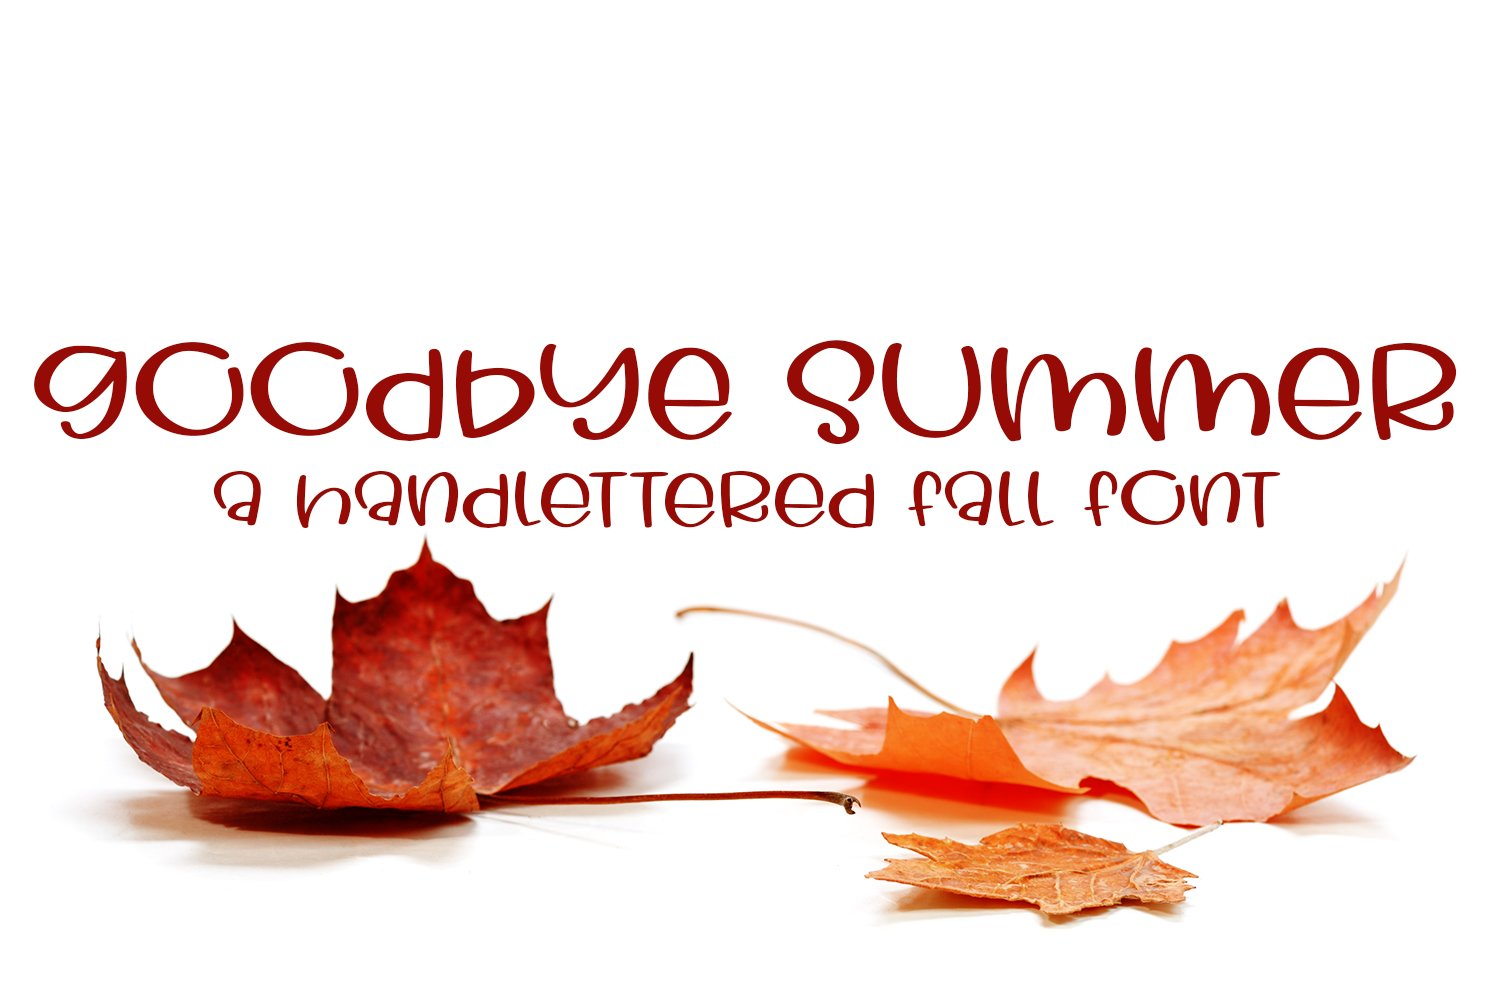 Goodbye Summer - A Hand-Lettered Fall Font example image 1